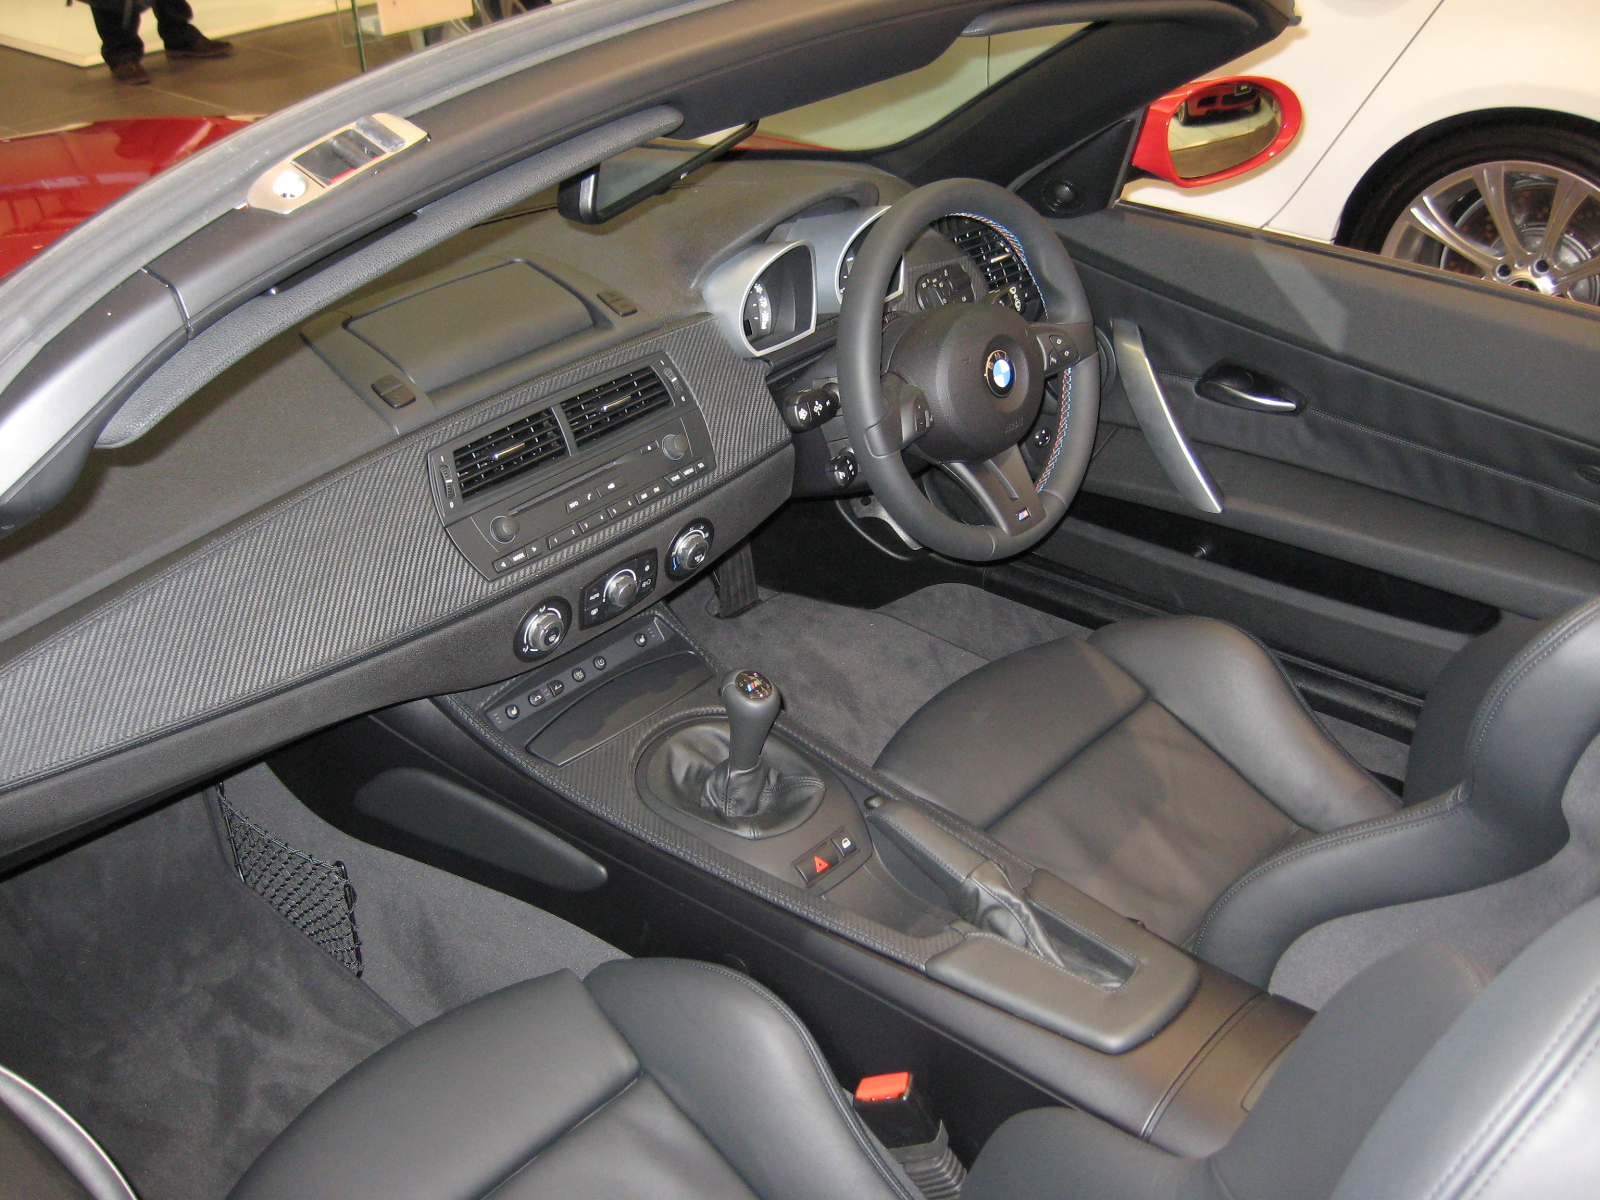 File:BMW Z4 M Roadster Interior.JPG - Wikimedia Commons